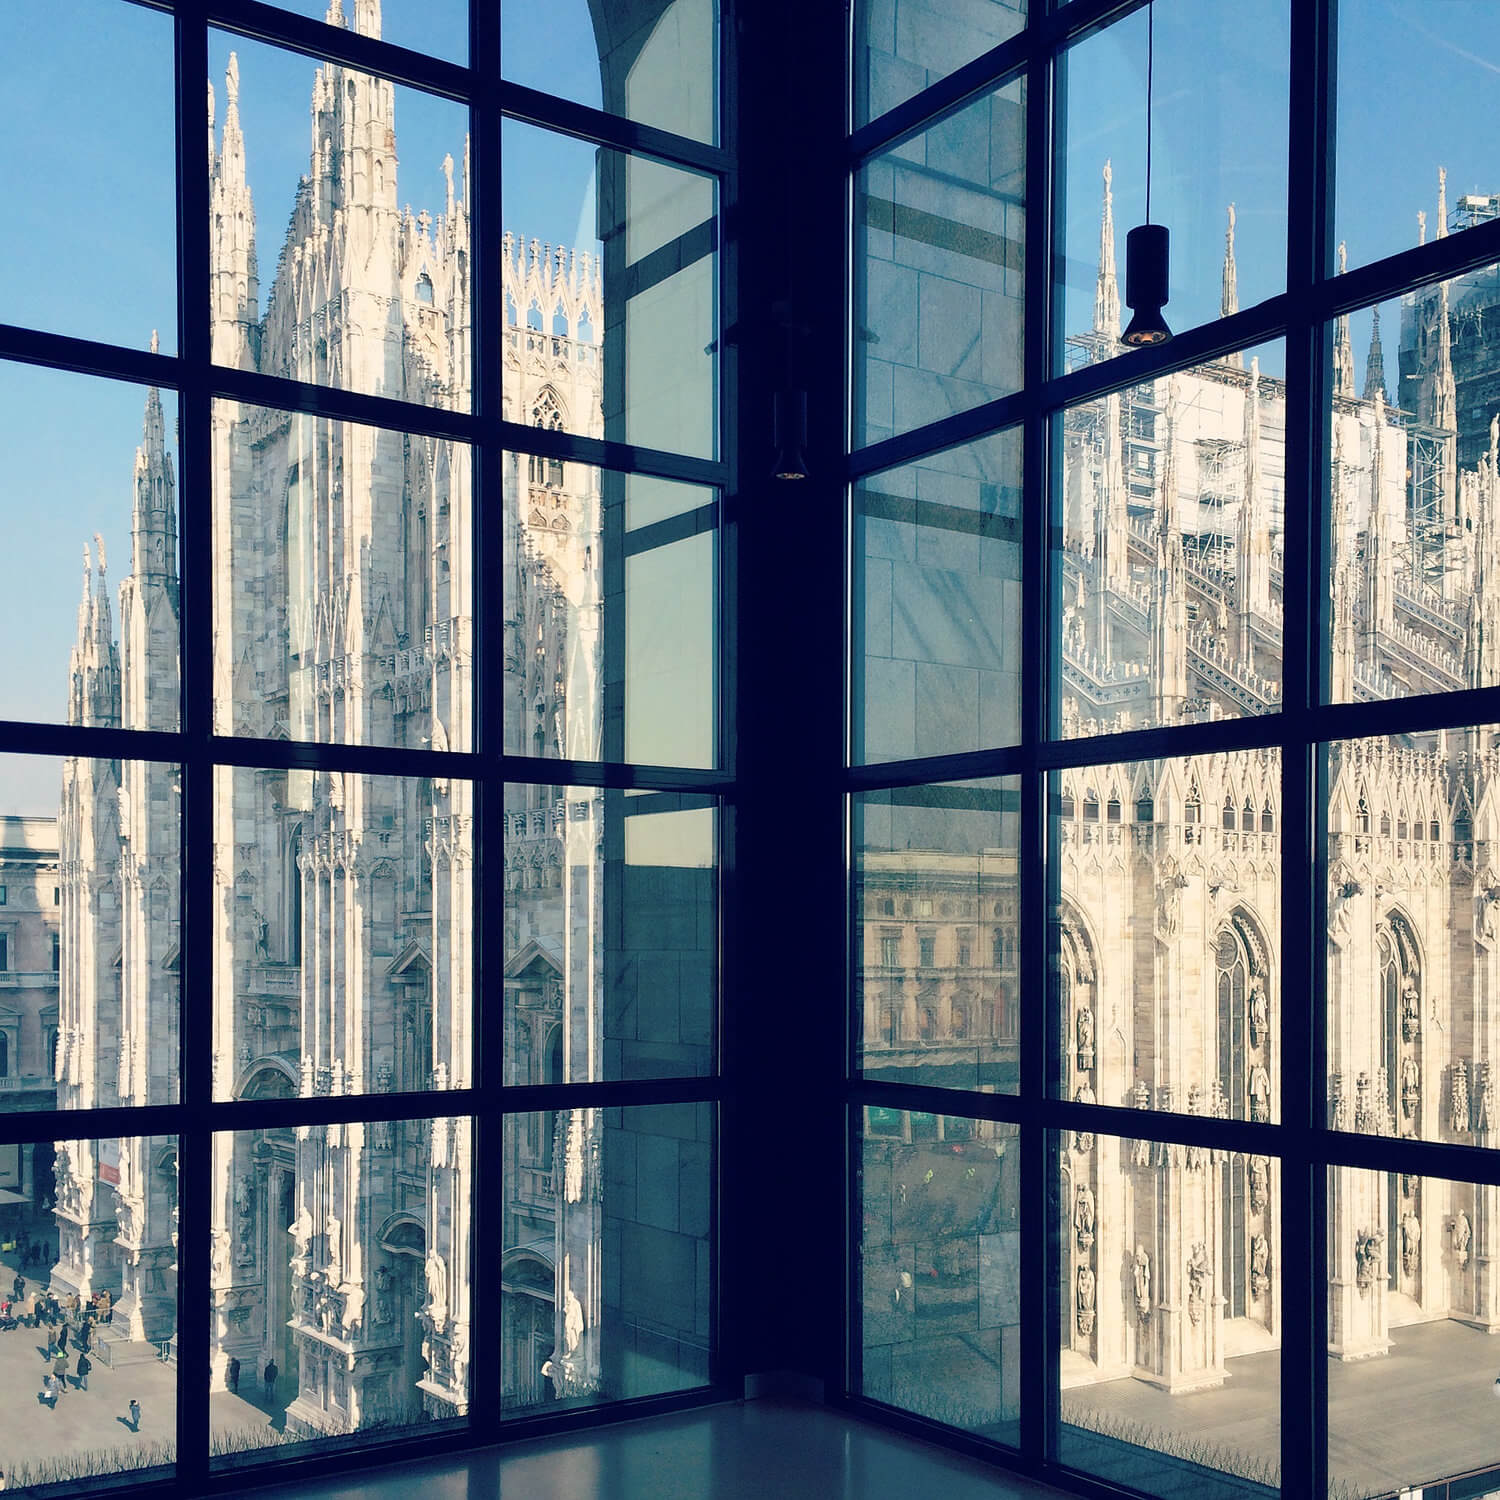 Photojournal: hashtag Milano